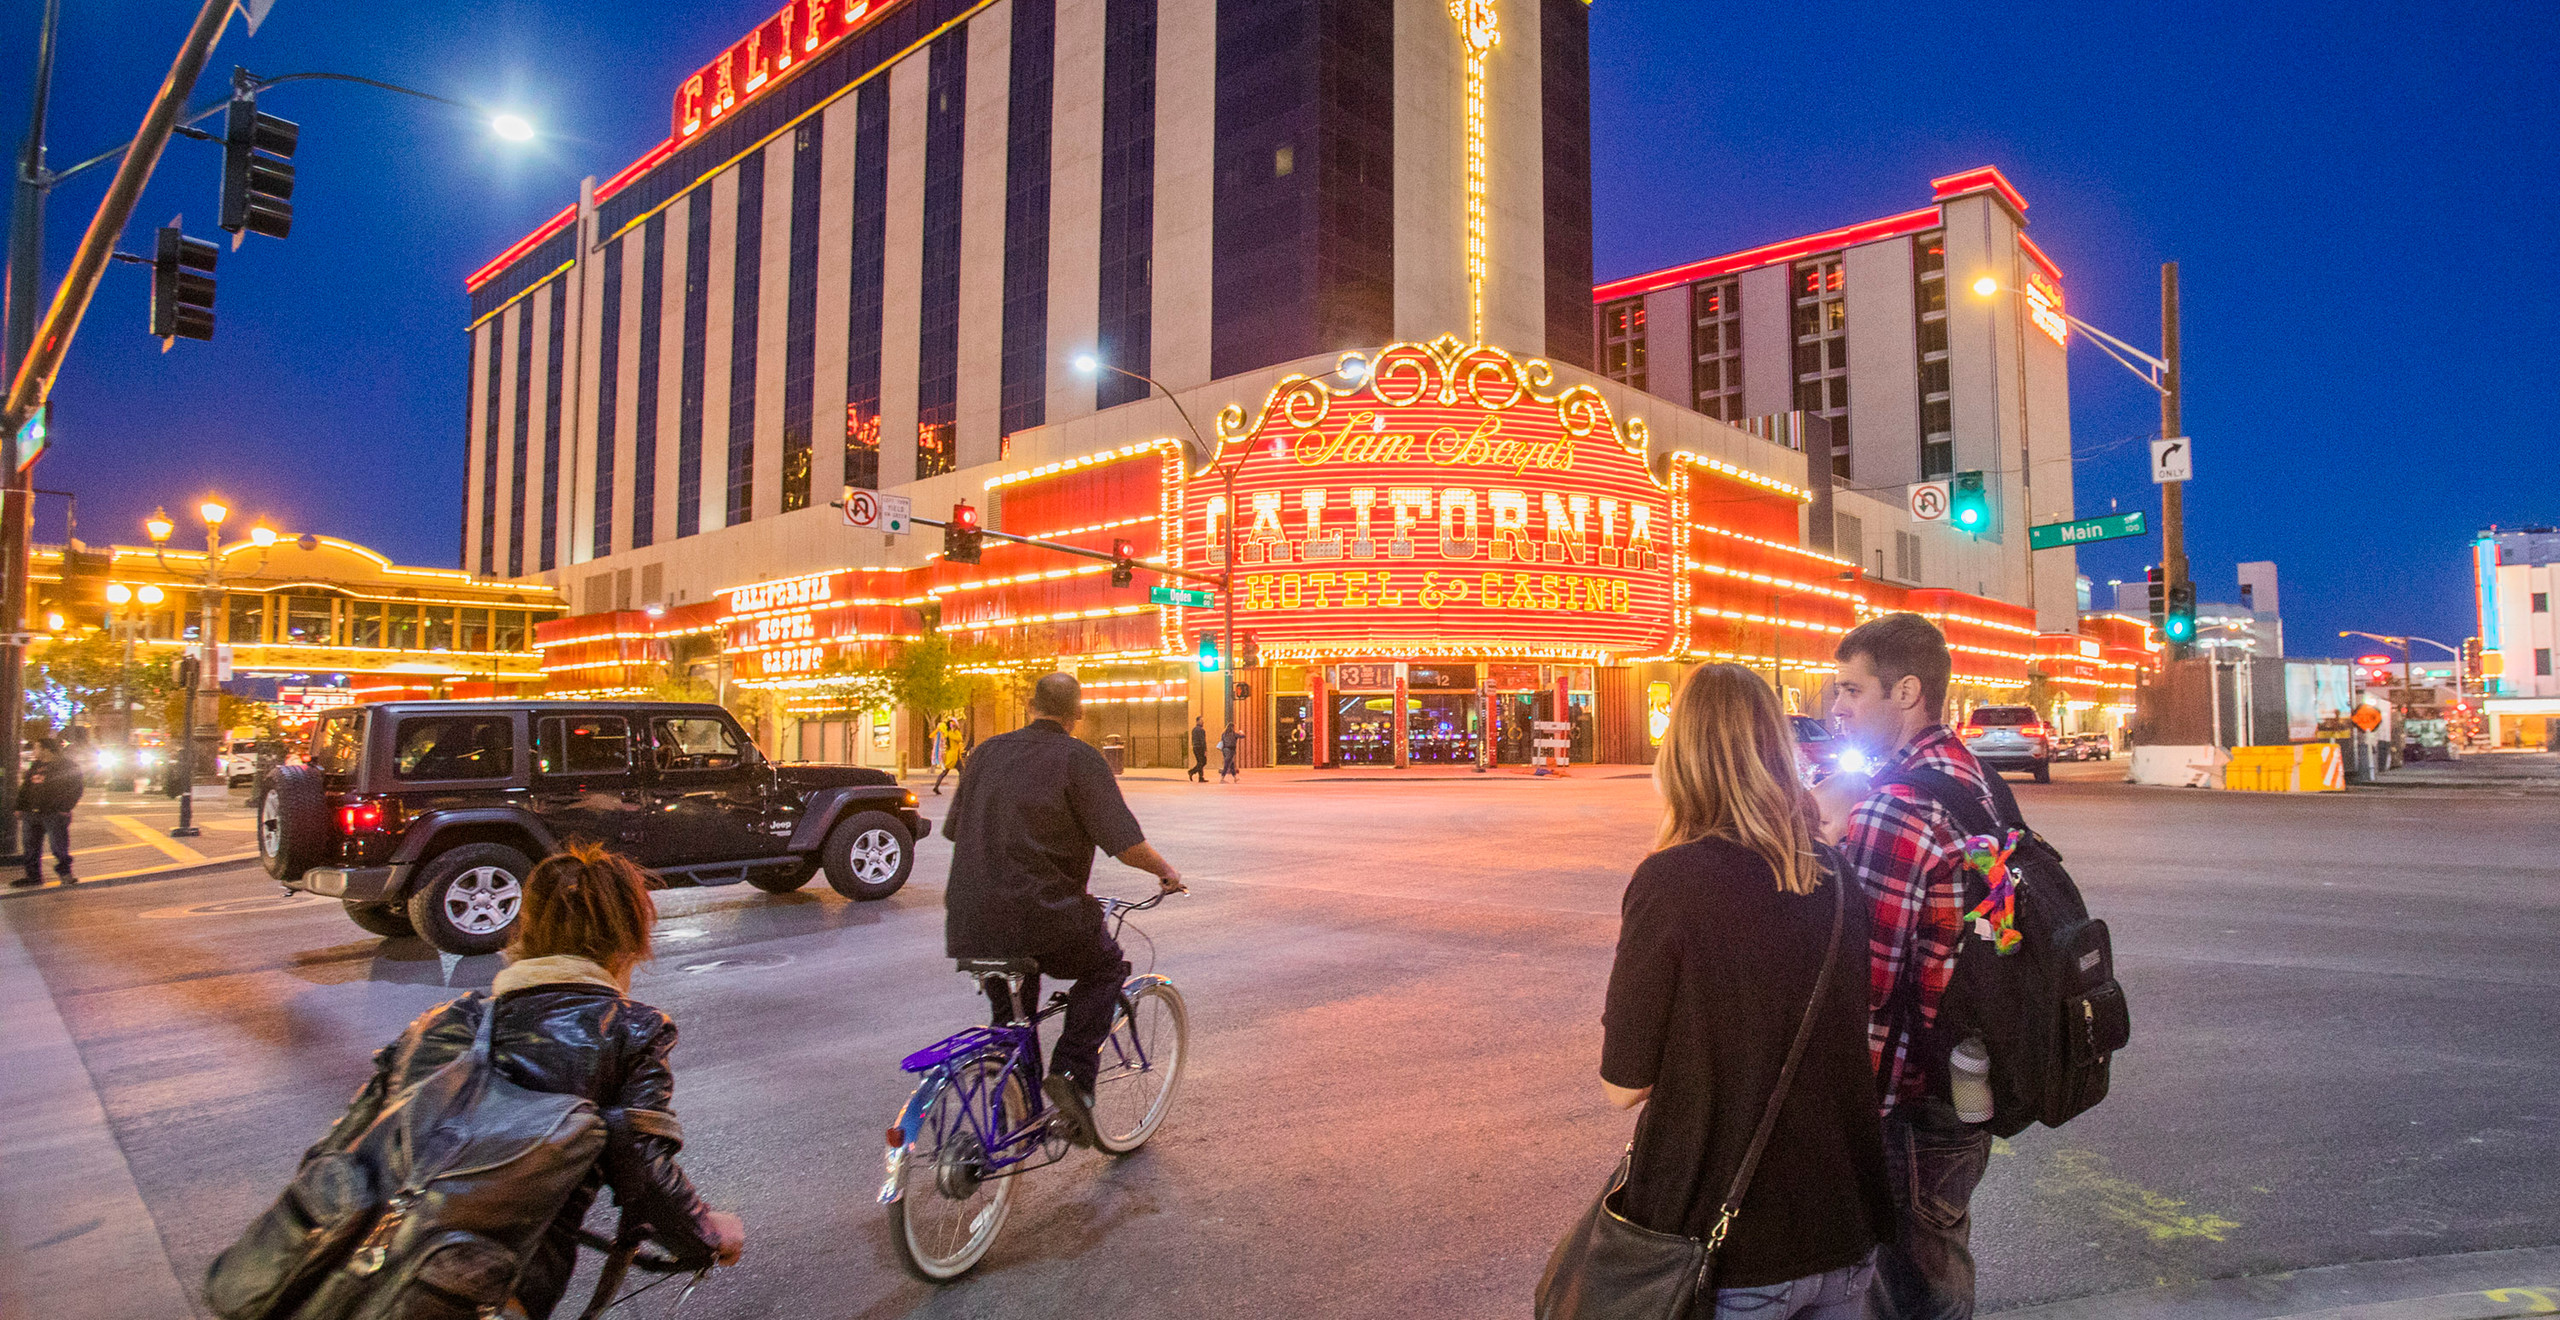 An exterior shot of the California Hotel and Casino, featuring its brightly lit signage, in the early evening against an indigo sky. Pedestrians and cyclists cross the street in the foreground.